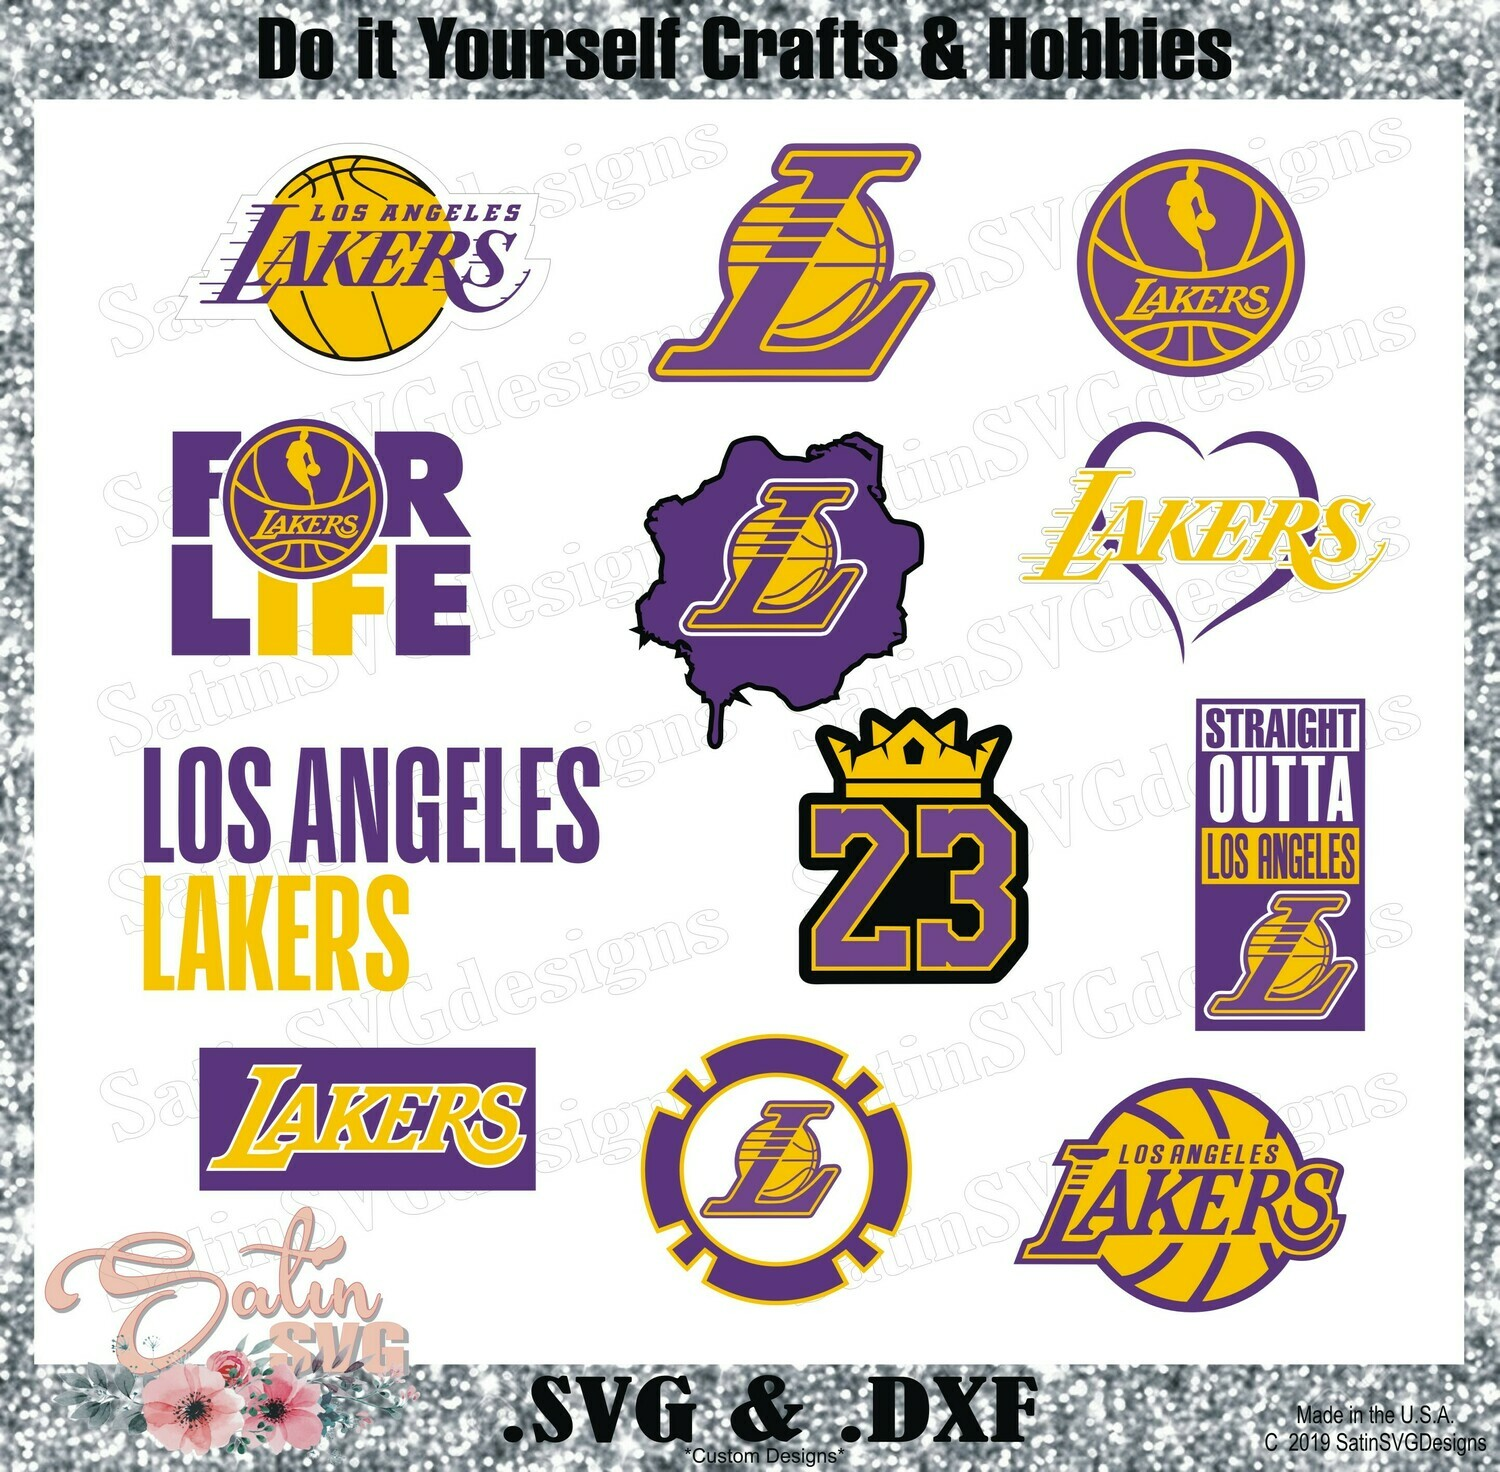 Los Angeles Lakers NEW Custom NBA Designs. SVG Files, Cricut, Silhouette Studio, Digital Cut Files, Infusible Ink